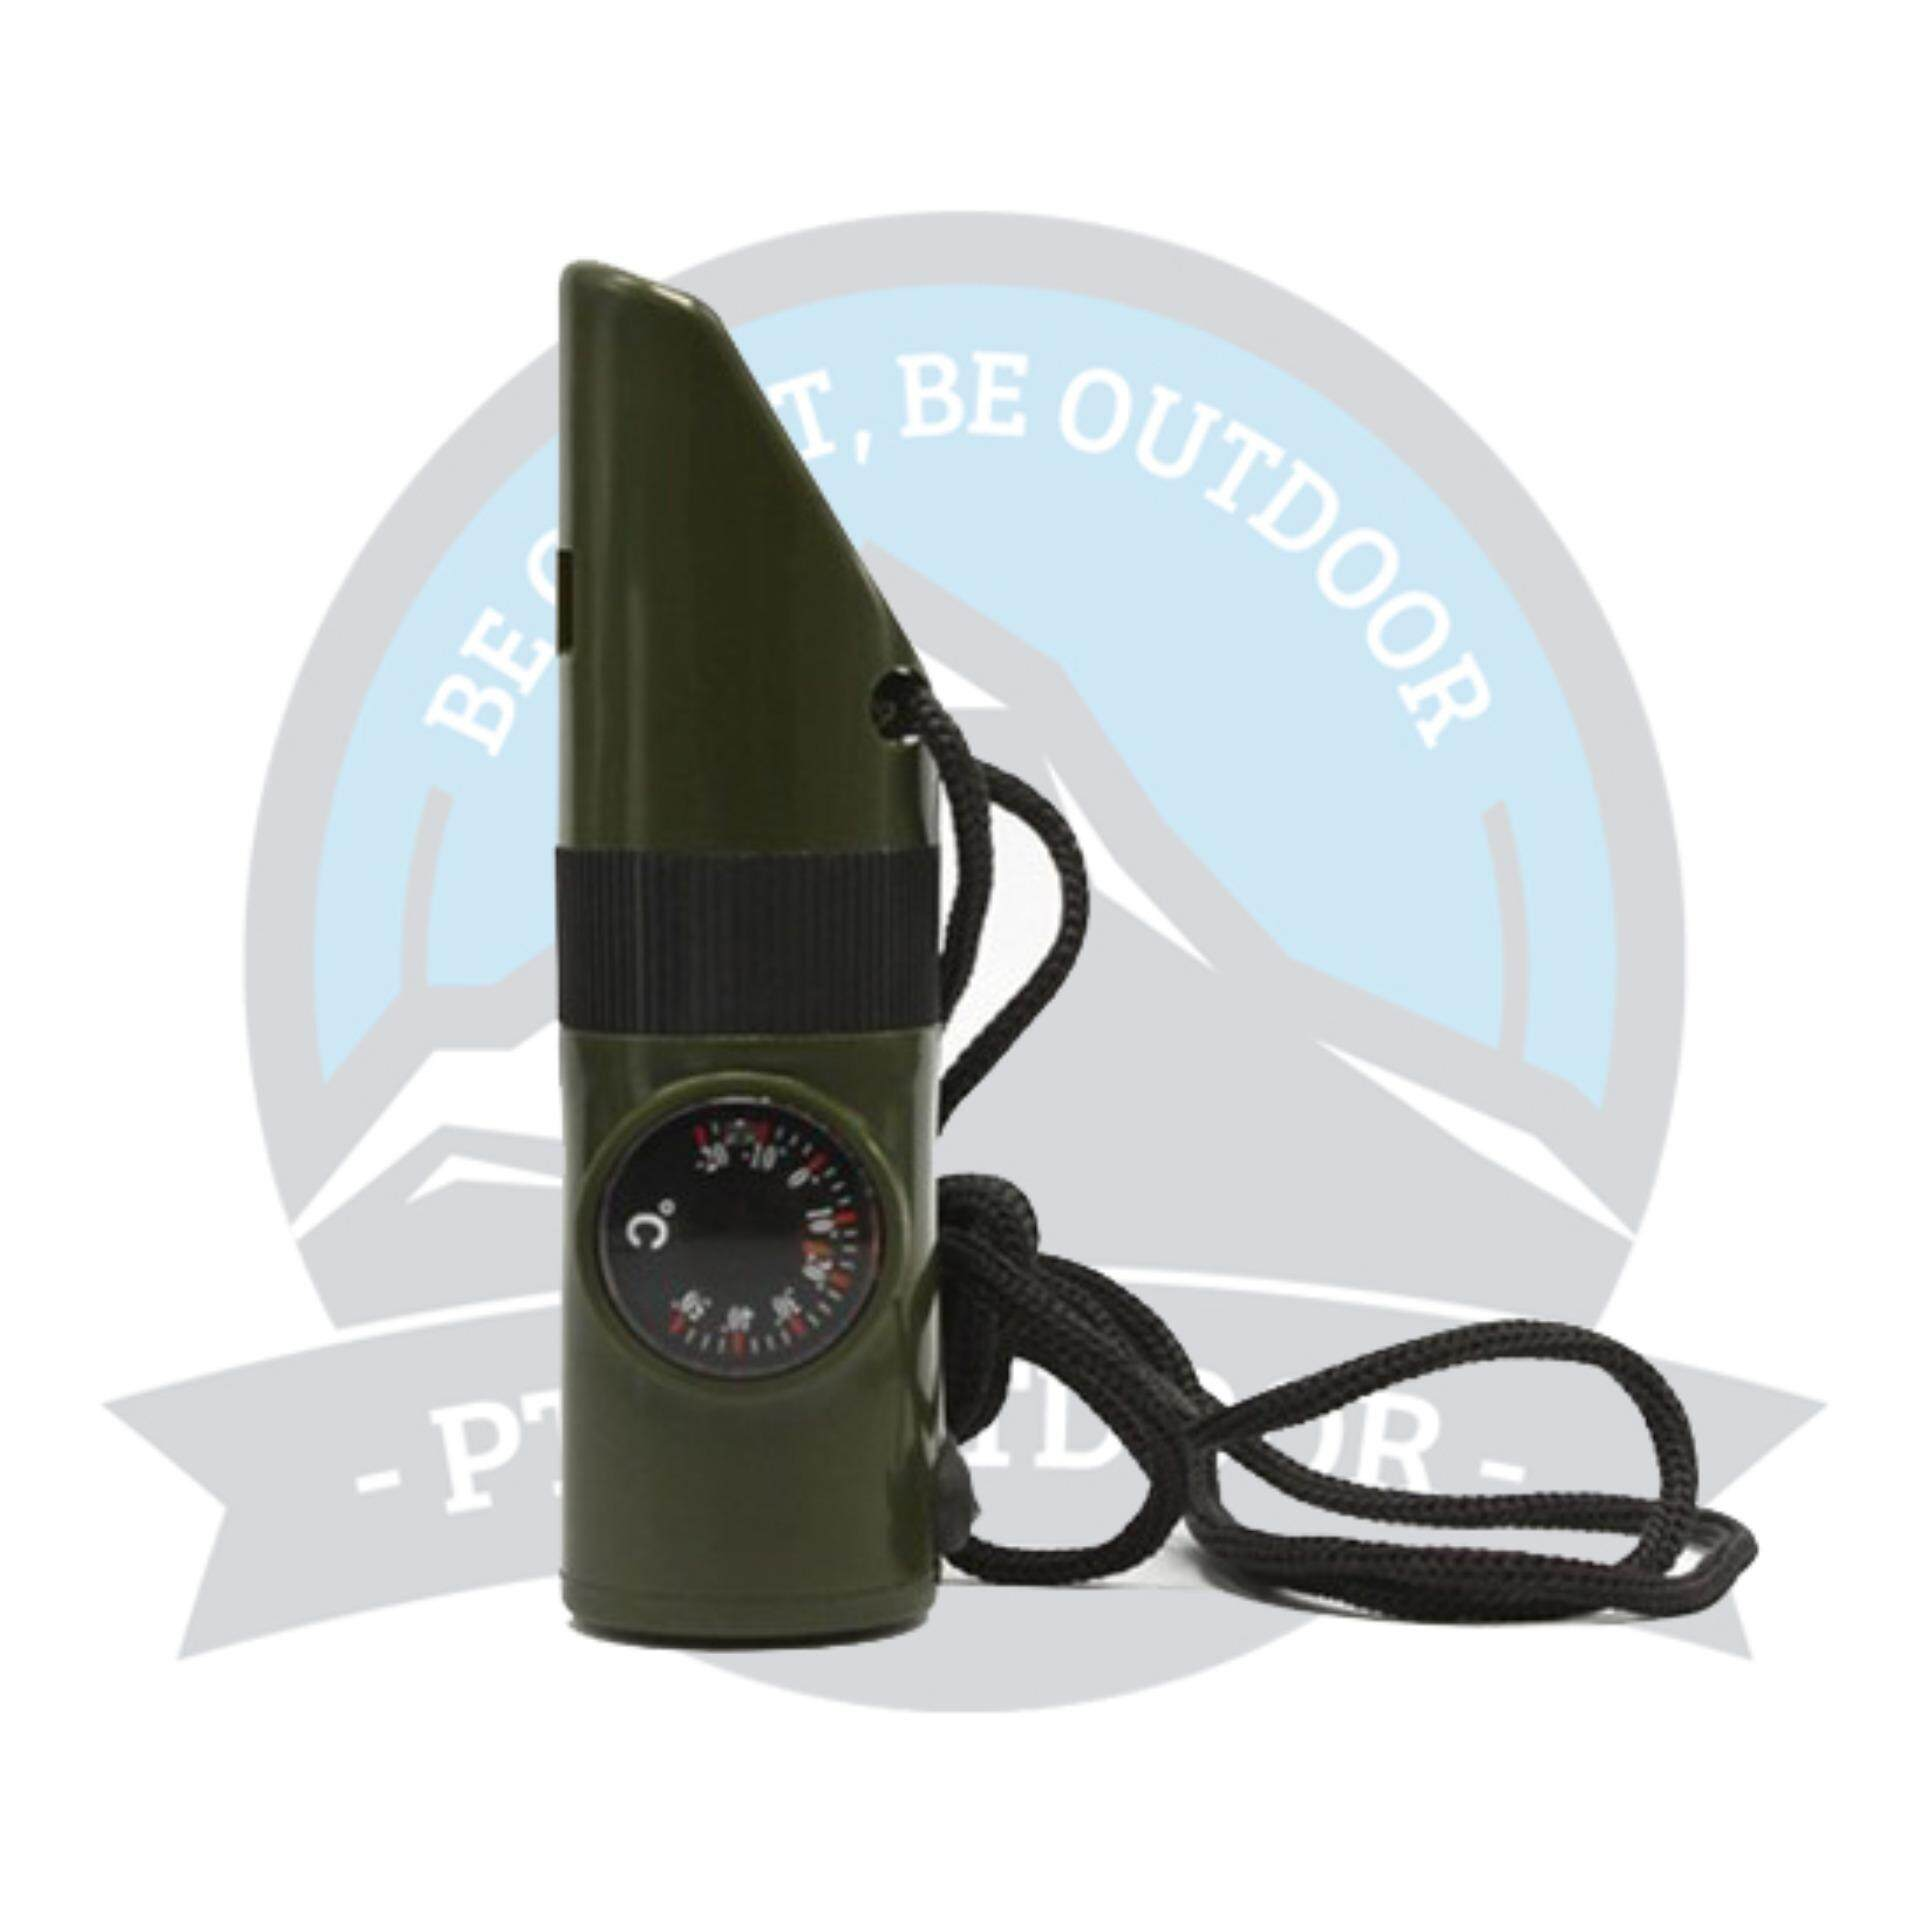 [READY STOCK] 7-in-1 Multifunction Outdoor Emergency Whistle w/ Compass / LED Flashlight / Thermometer - Army Green